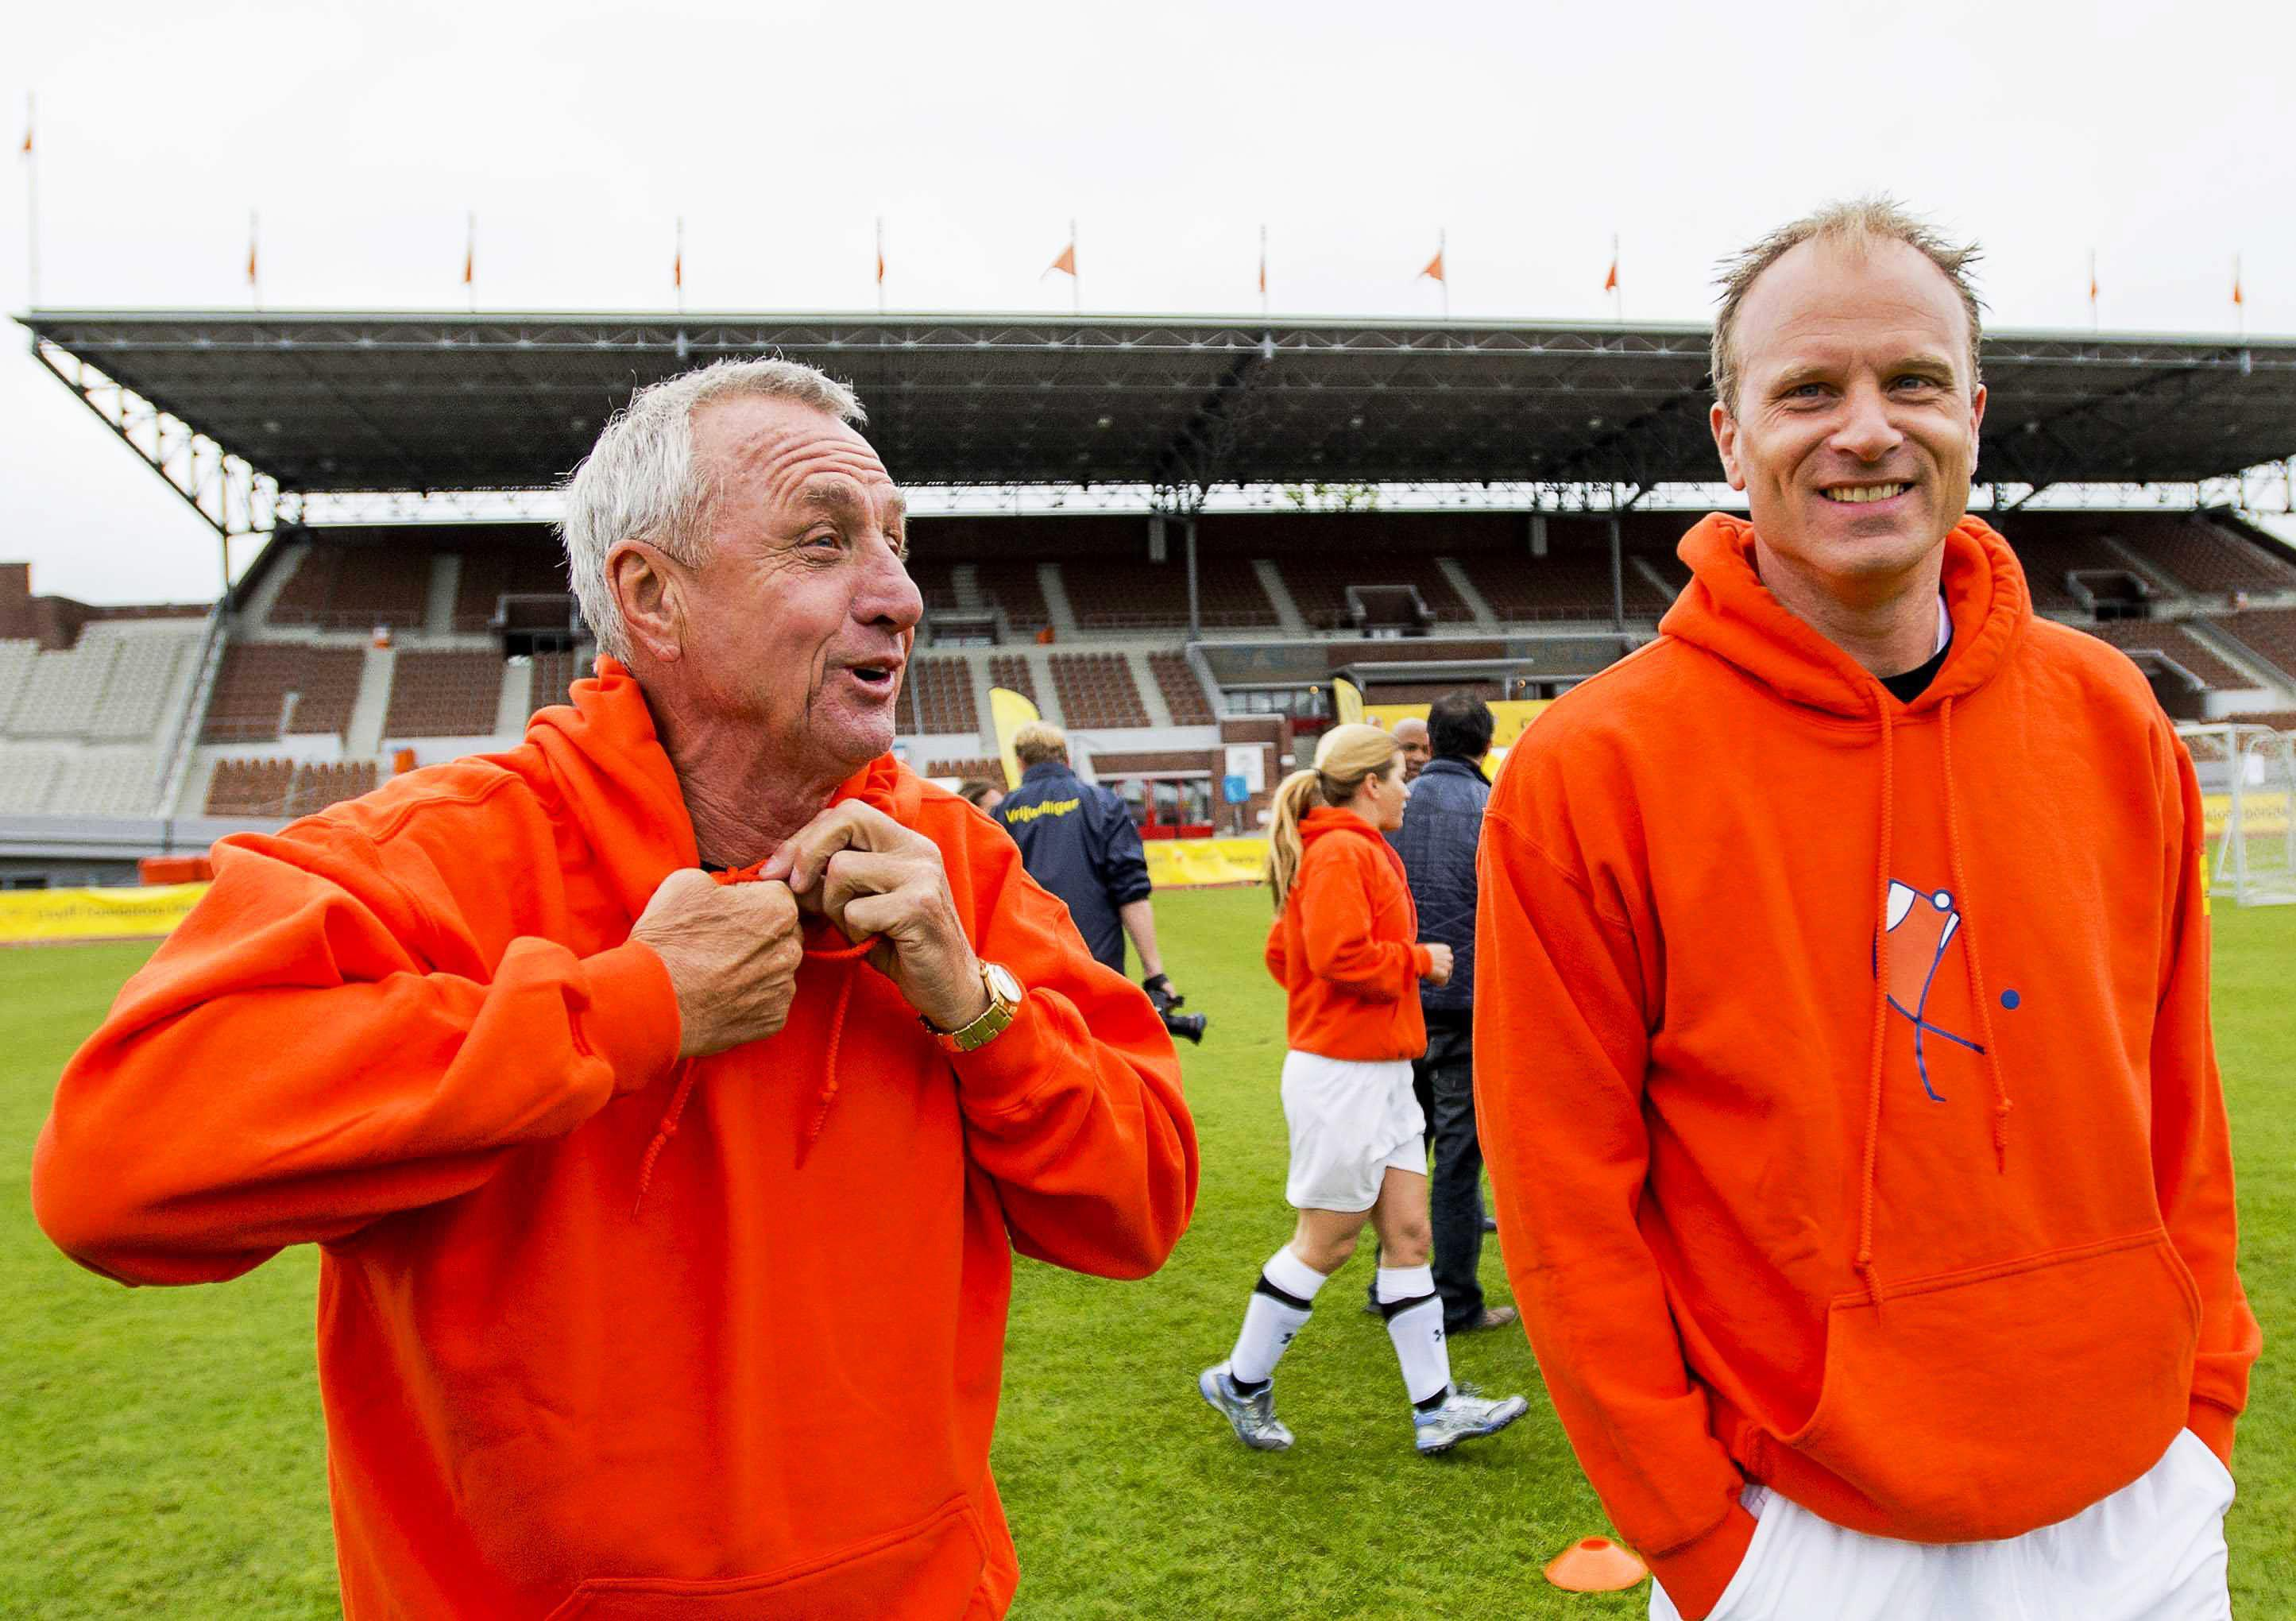 Johan Cruyff tried to persuade Dennis Bergkamp to join him at Barcelona